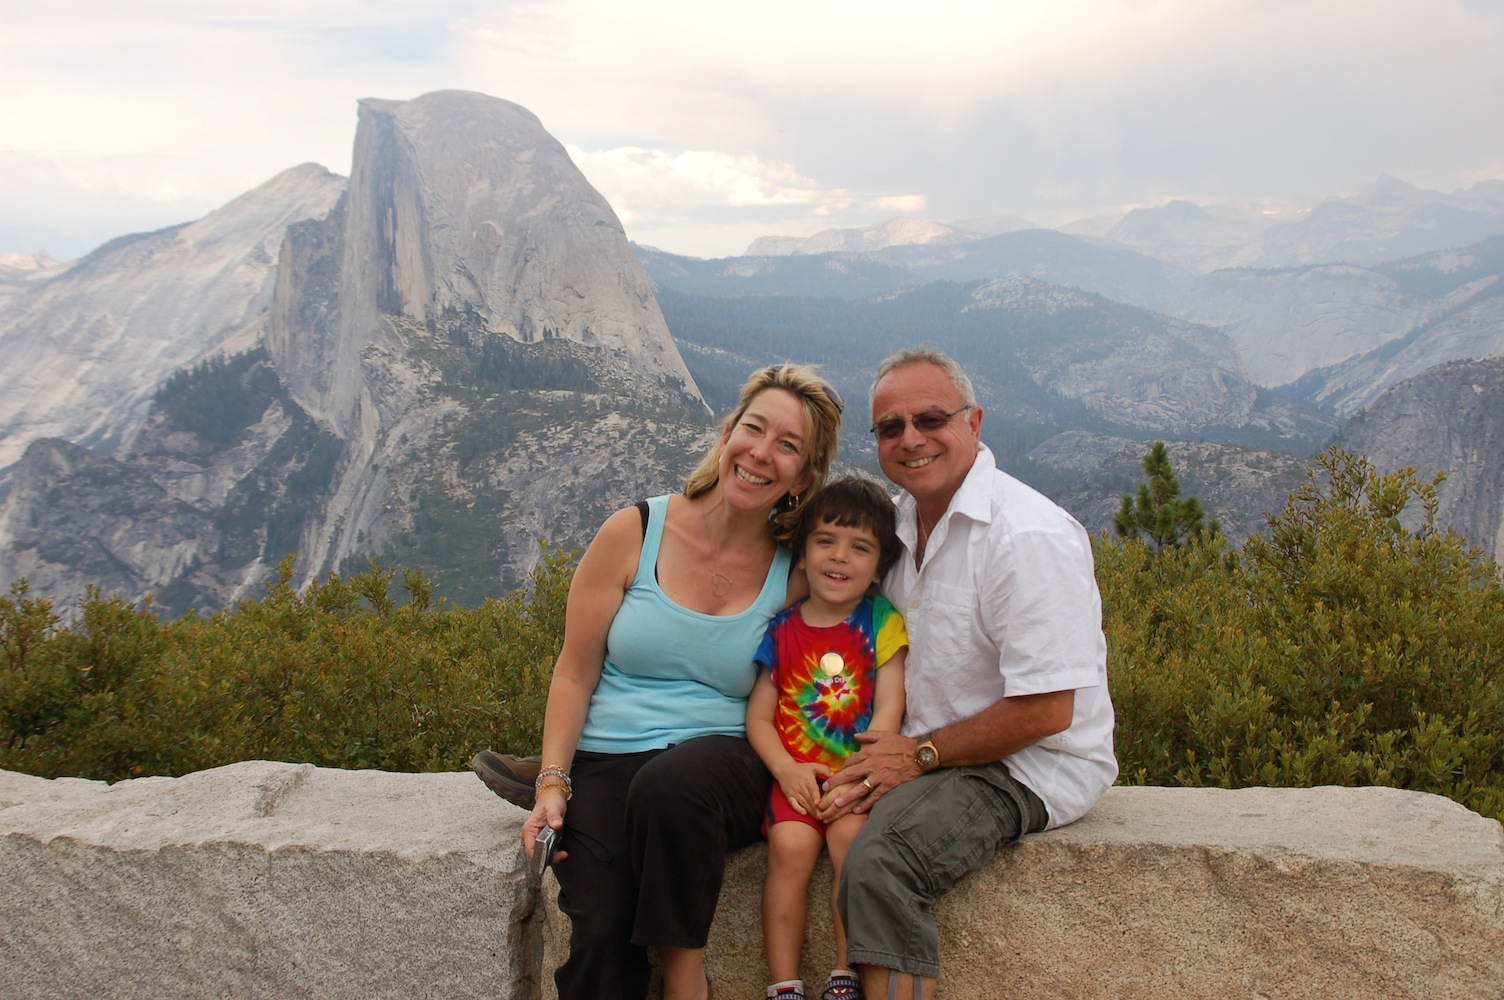 THE REDWOODS – SIERRA NATIONAL FOREST AND YOSEMITE